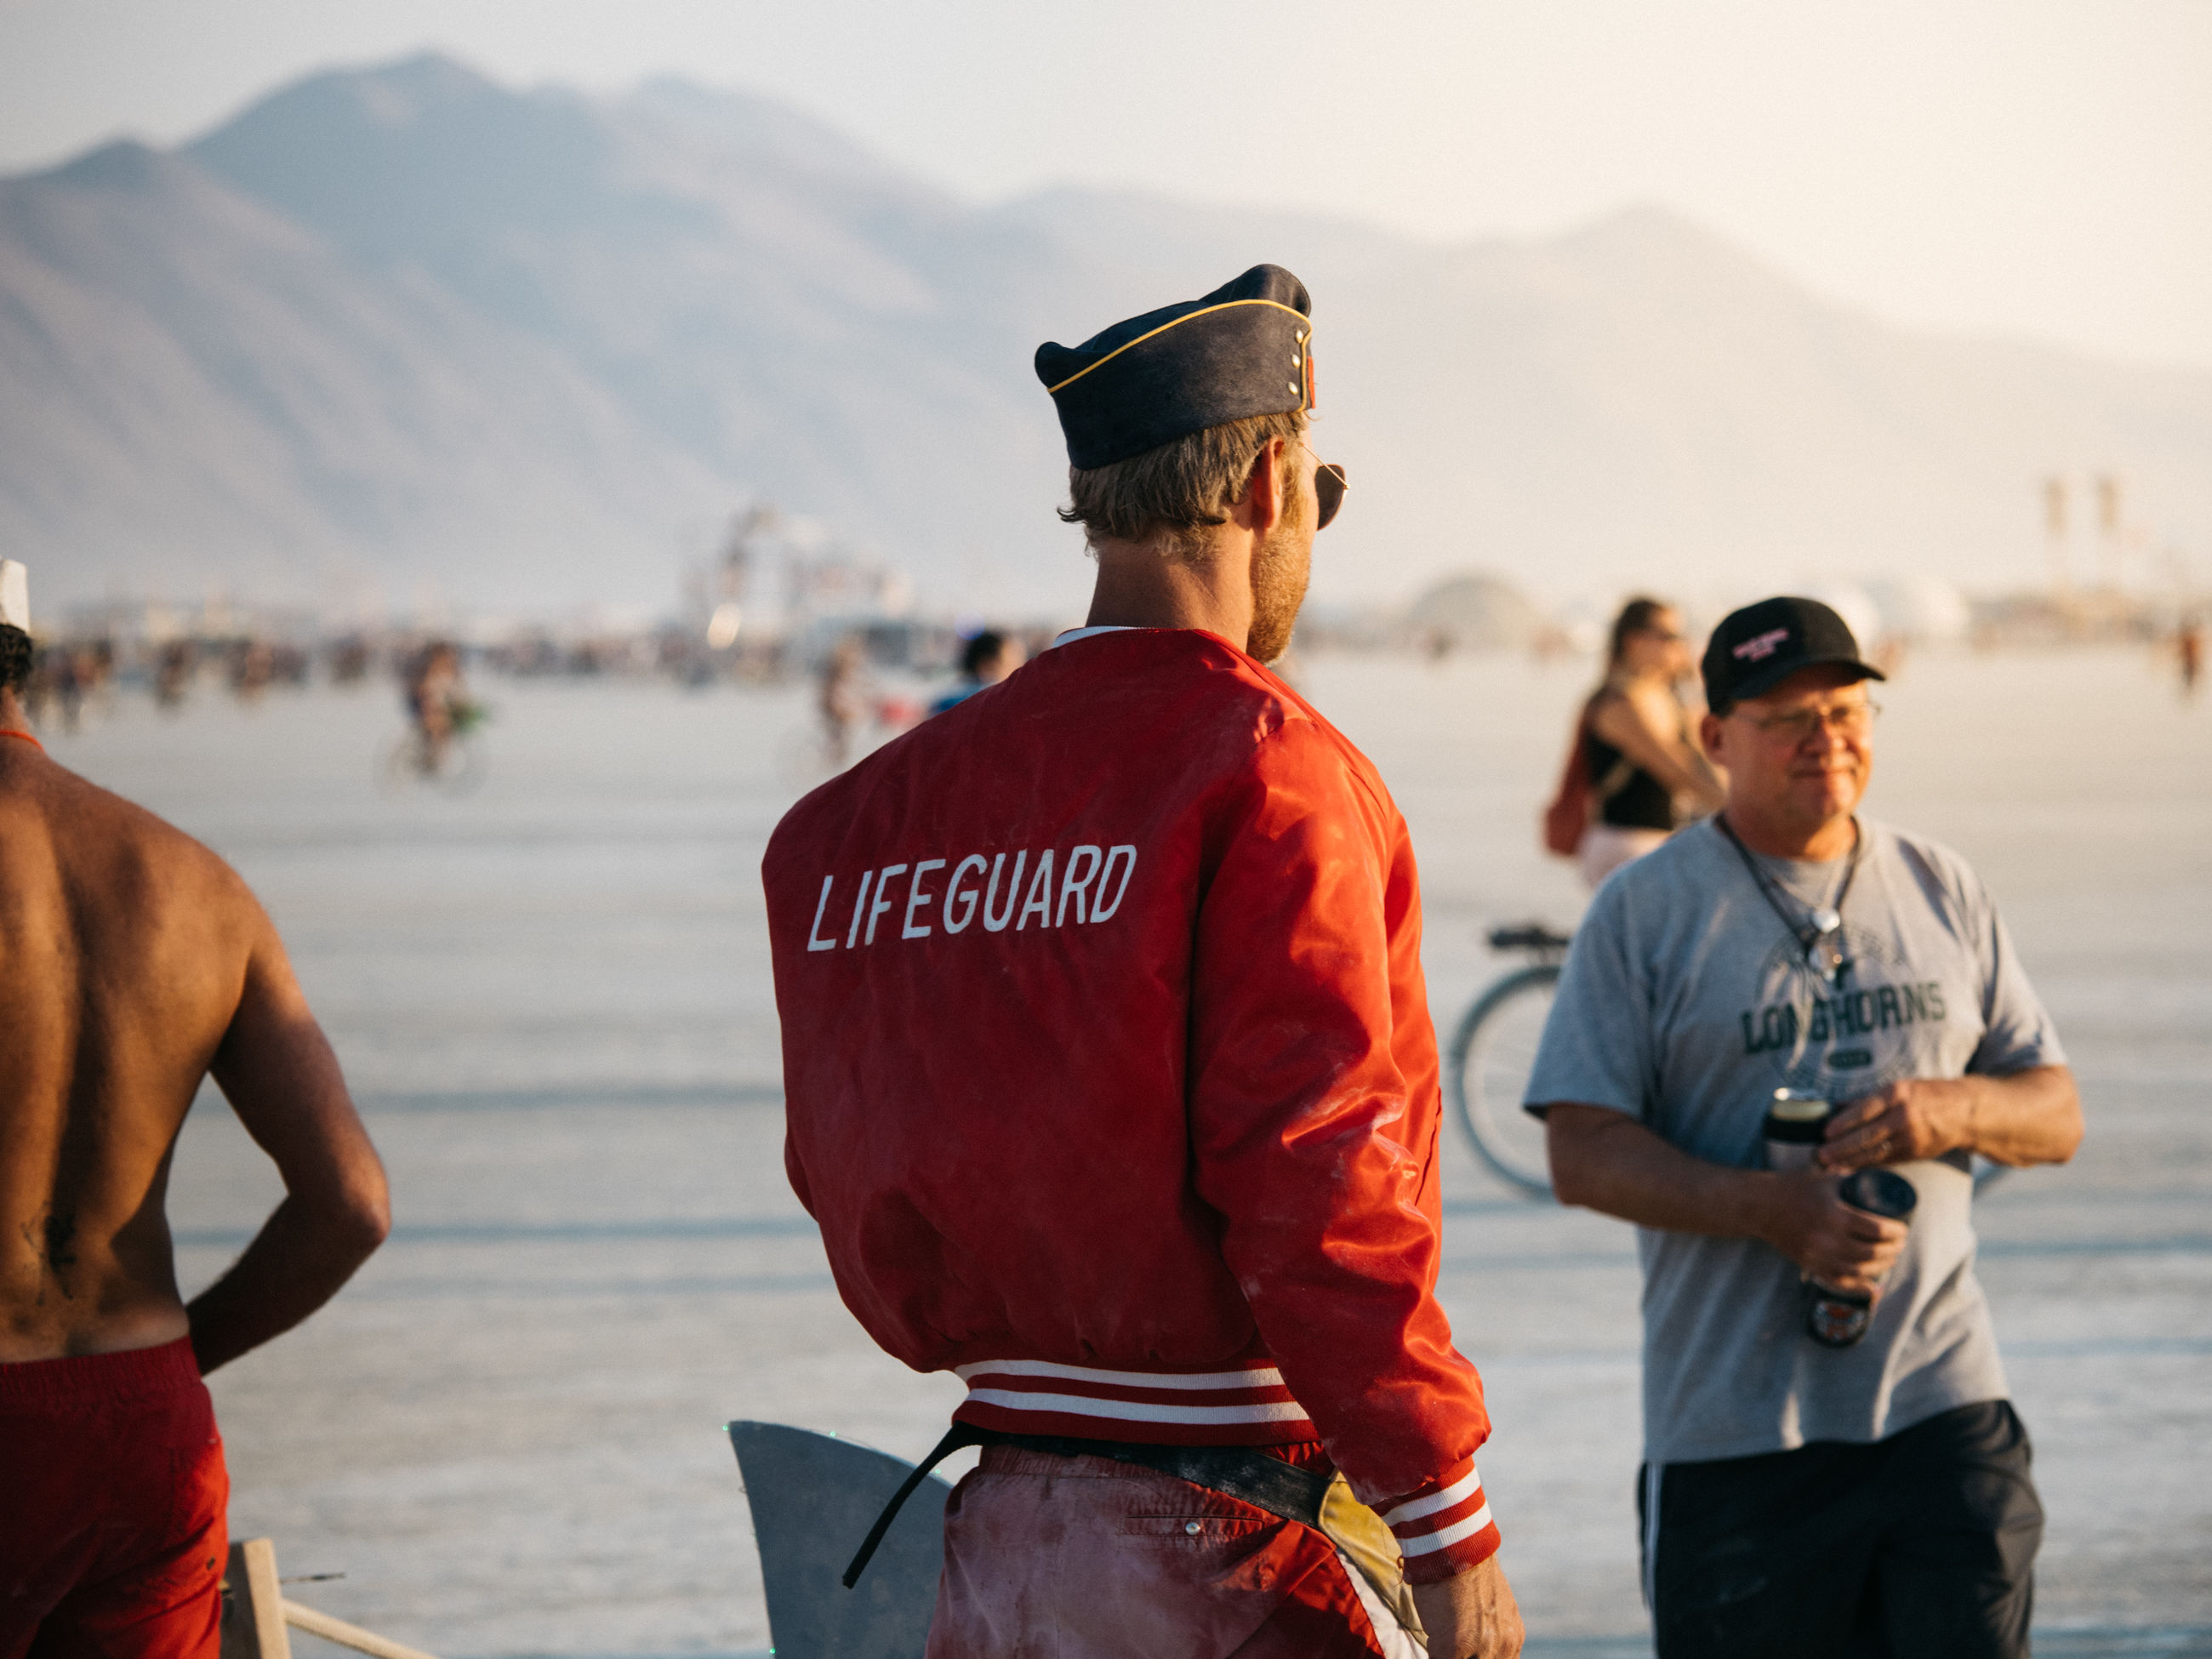 men, water, group of people, real people, focus on foreground, day, three quarter length, clothing, rear view, nature, standing, outdoors, hat, incidental people, people, adult, communication, males, cap, uniform